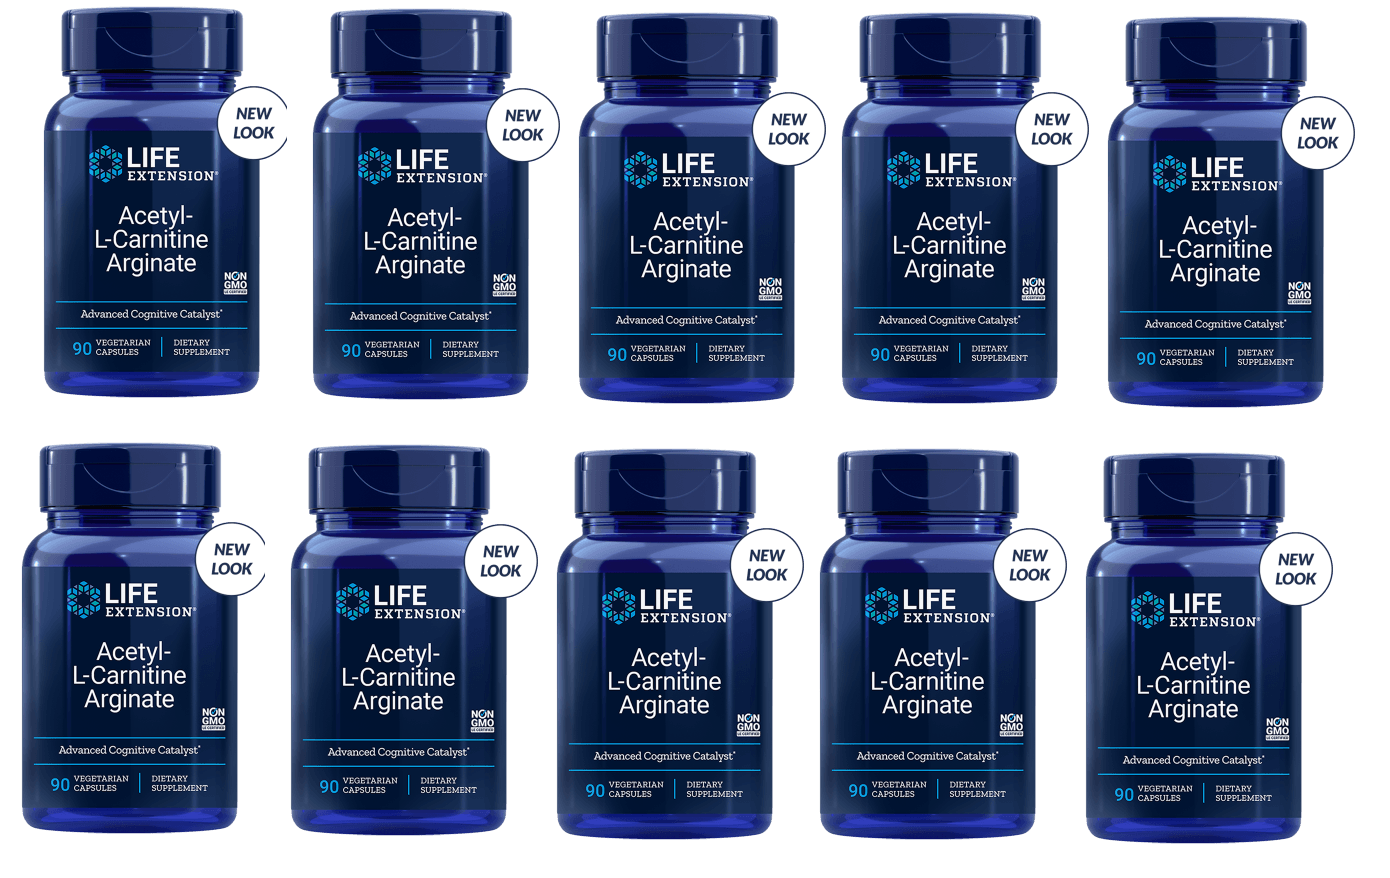 Life Extension Acetyl-L-Carnitine Arginate, 90 Vegetarian Capsules, 10-pack